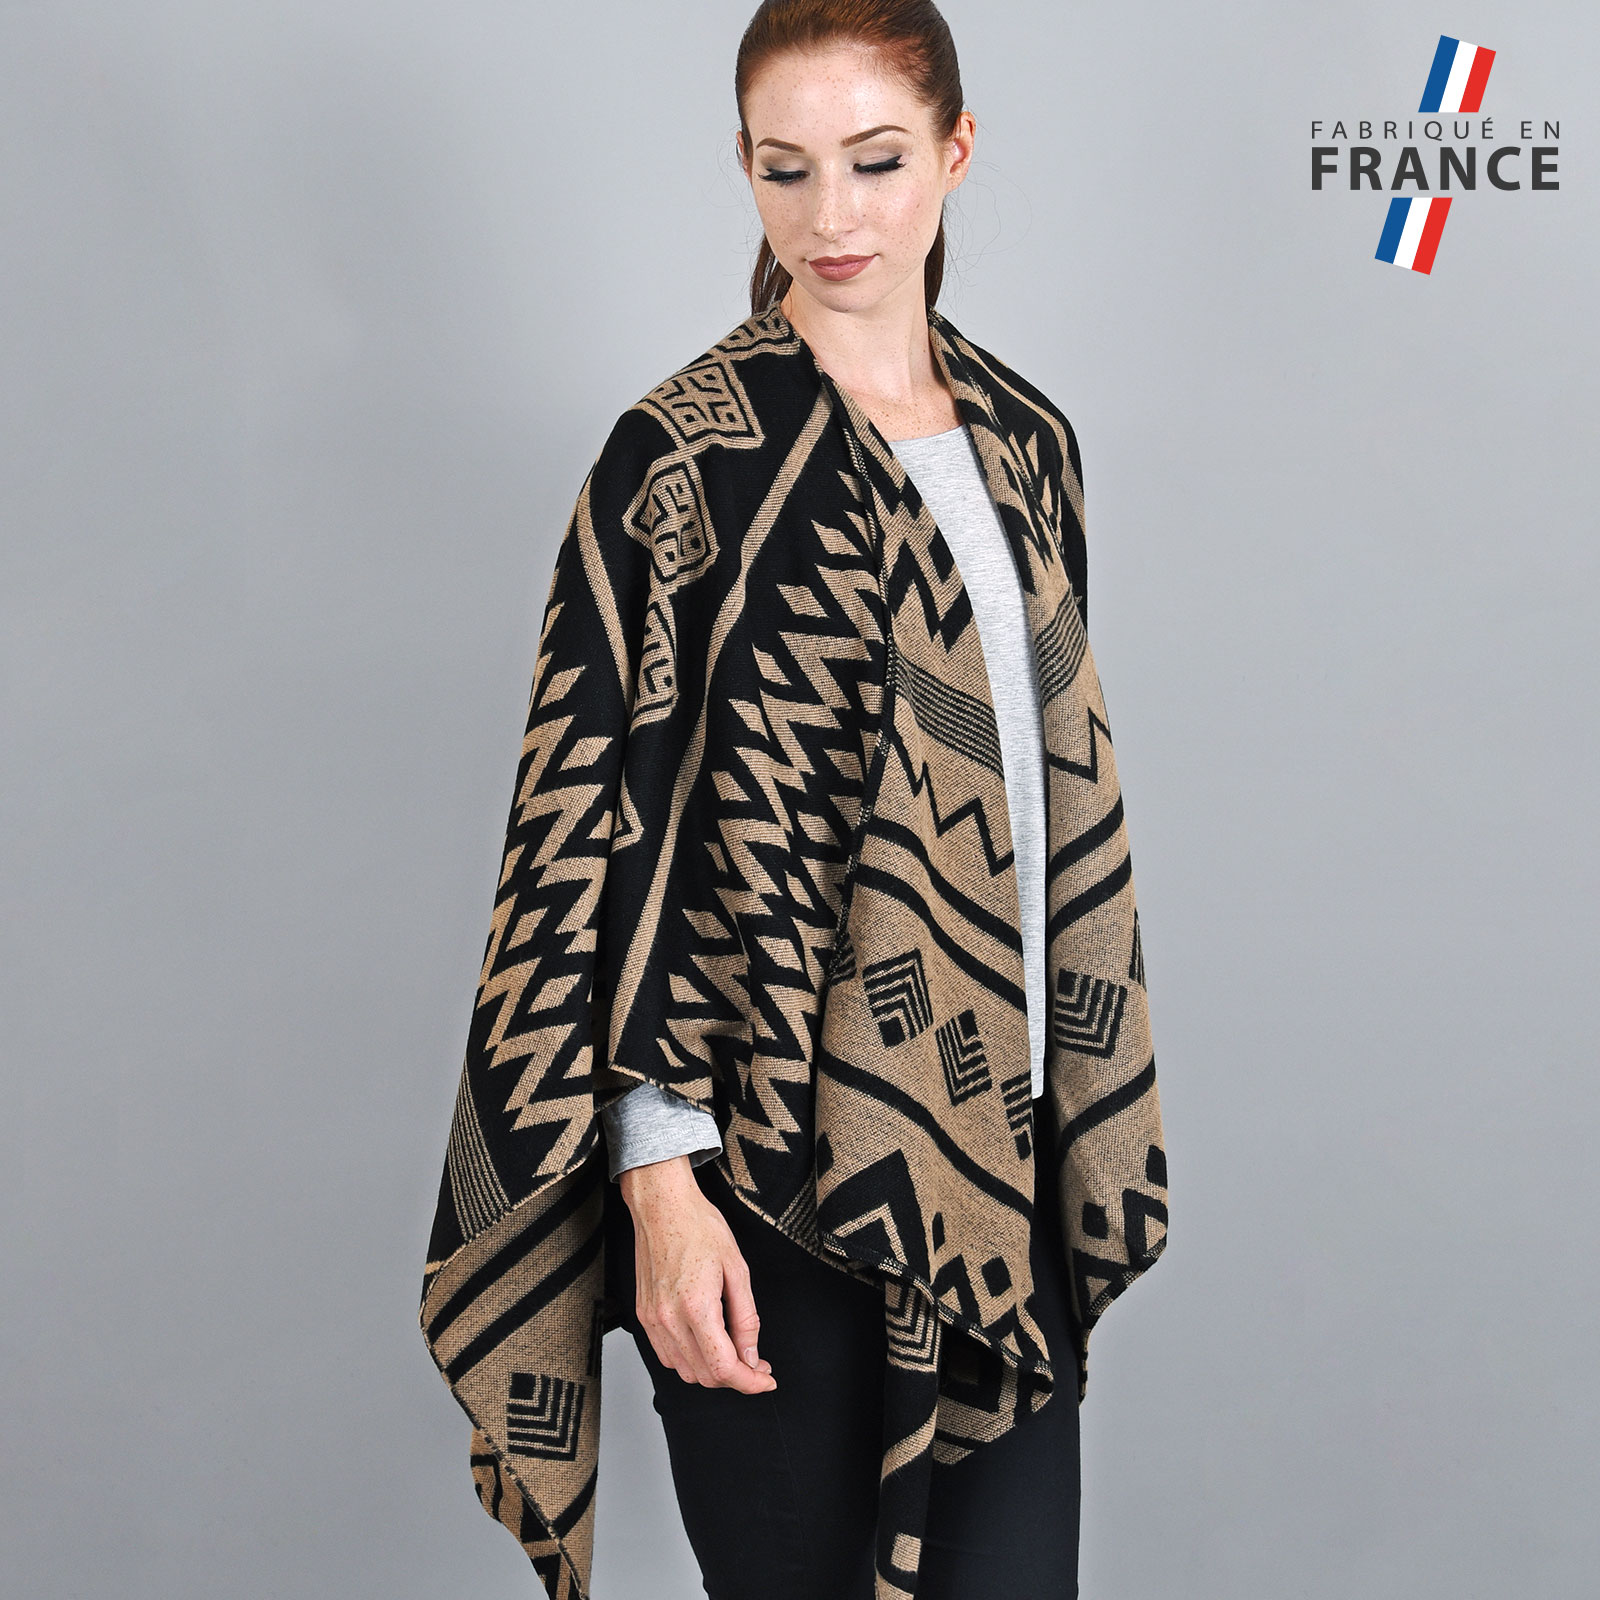 AT-03752-VF16-LB_FR-poncho-azteque-sombre